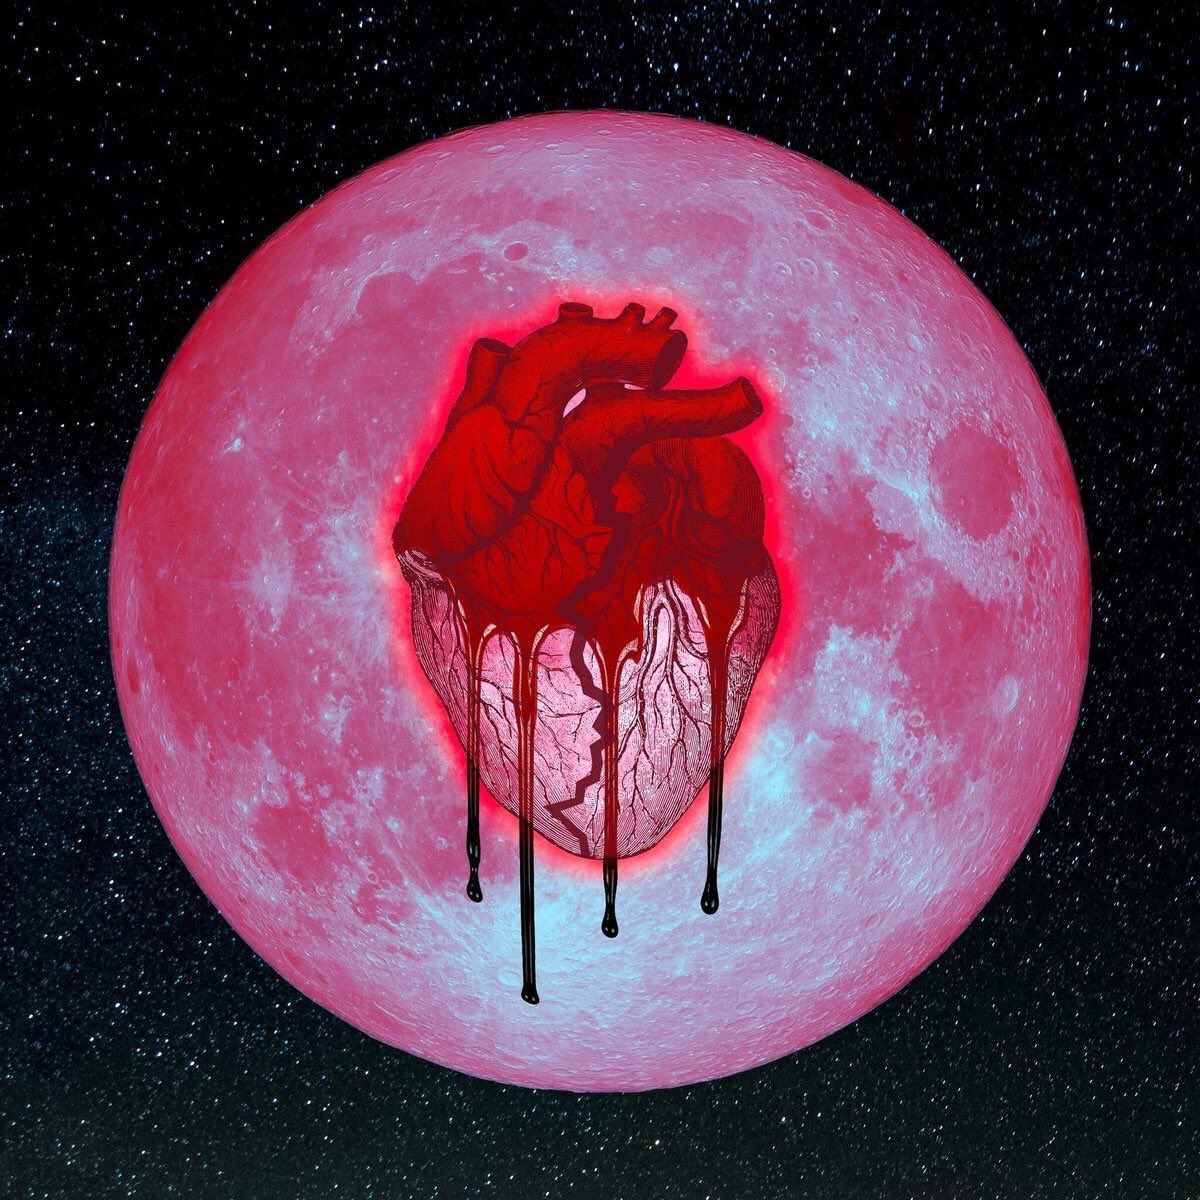 Stream #HeartbreakOnAFullMoon on @Spotify now! ���� https://t.co/DSgT1oHFQG https://t.co/vZzXFastM2